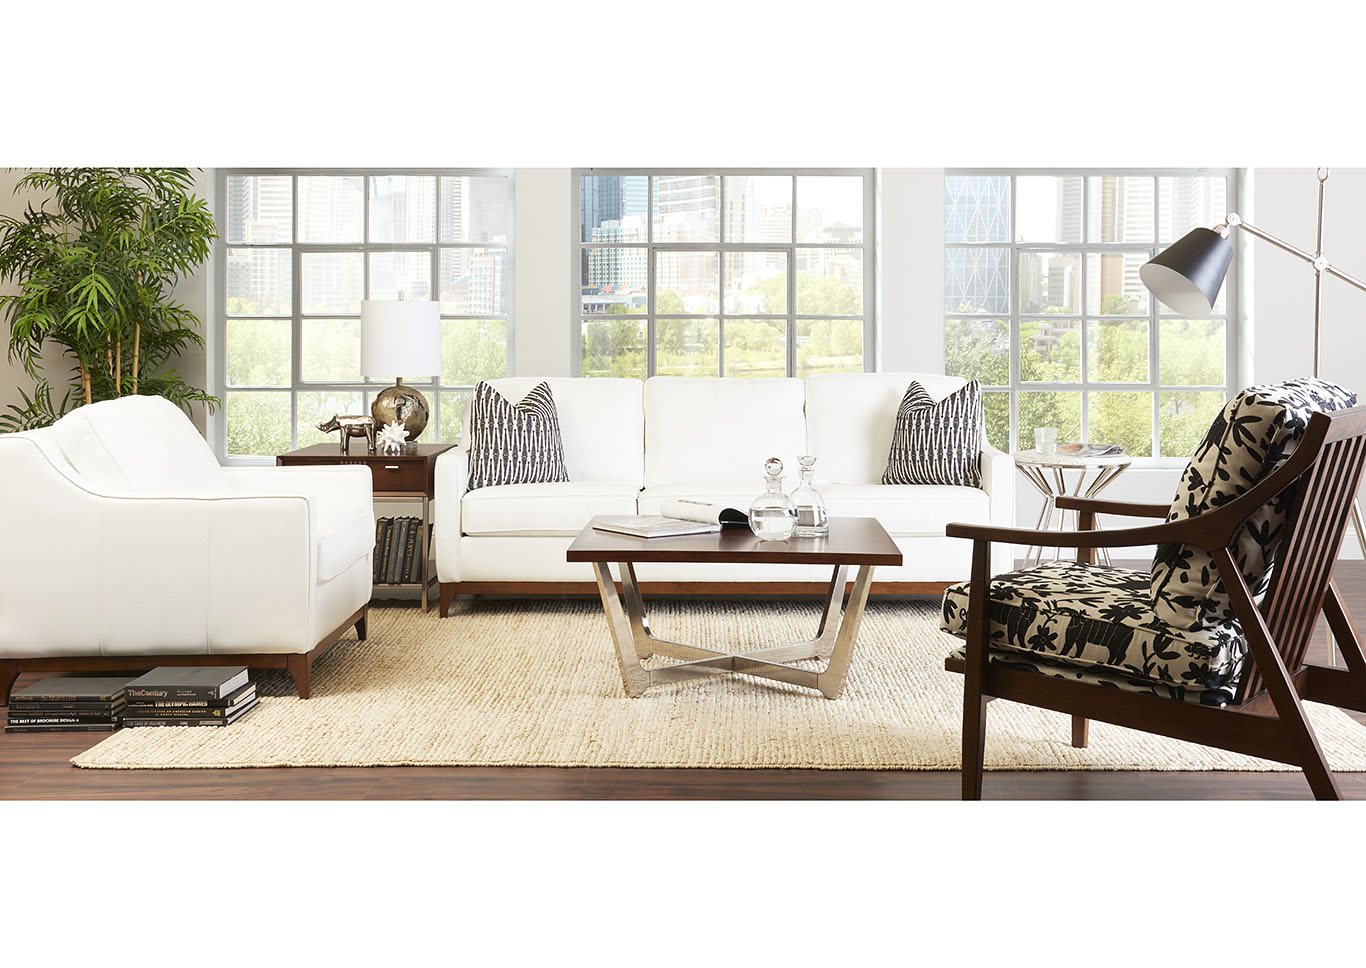 Anson Leather Stationary Loveseat,Klaussner Home Furnishings